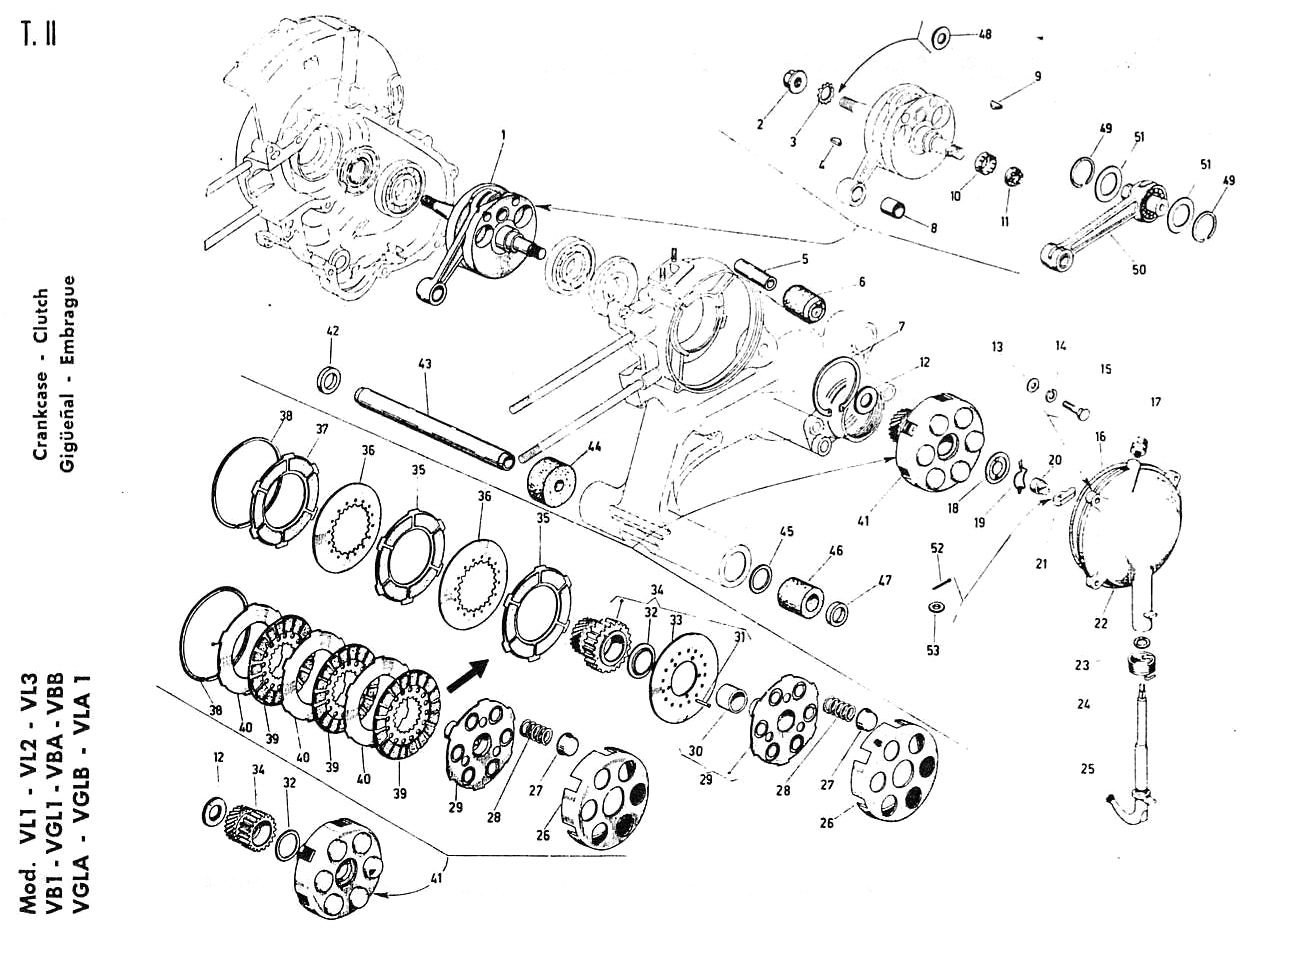 vespa parts diagram wiring diagram for you scooter battery wire diagram vespa engine diagram free wiring [ 1300 x 960 Pixel ]